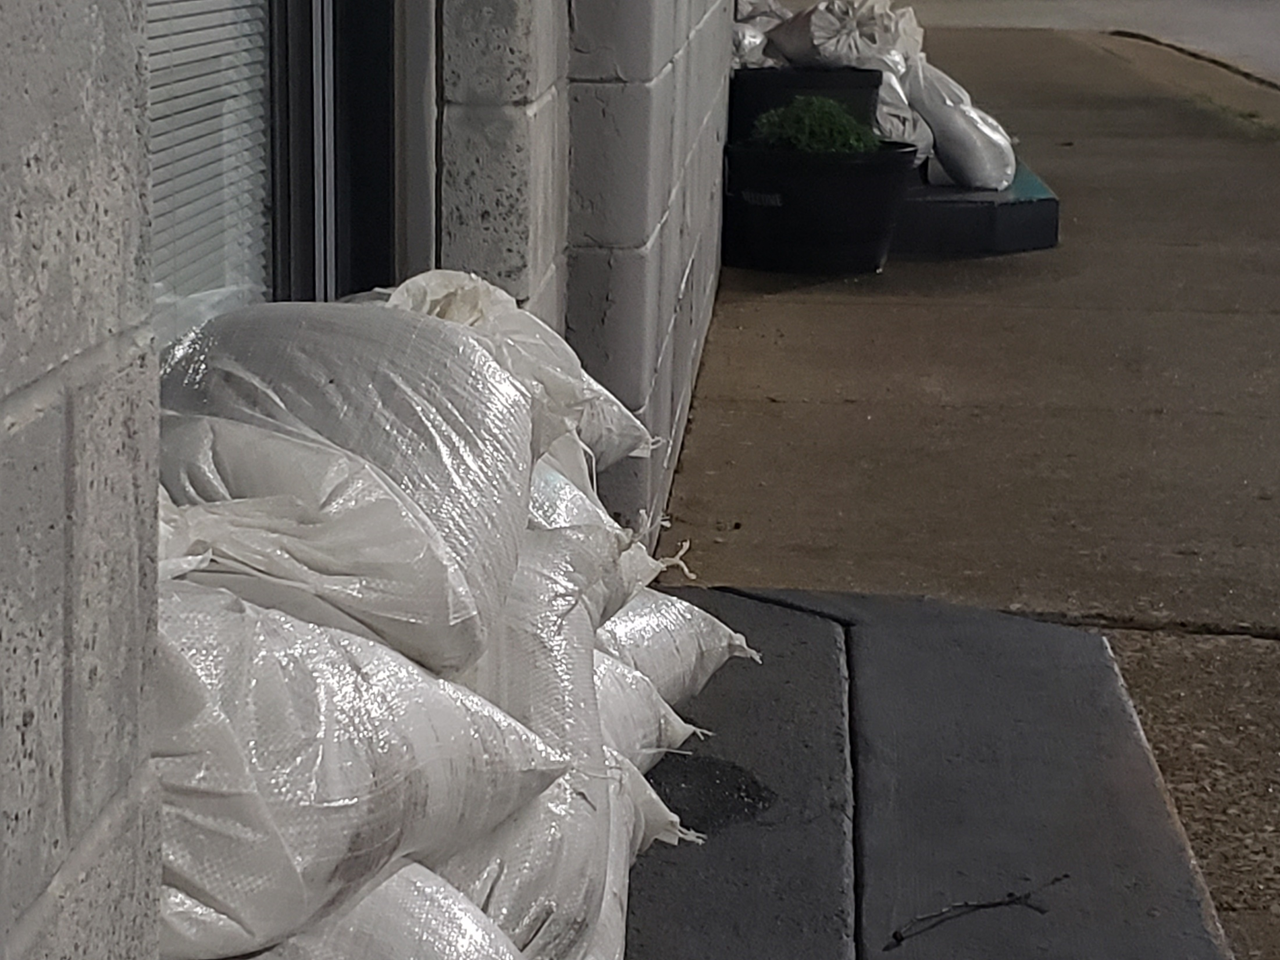 More Storms in the Forecast, Some Jasper Businesses Putting Up Sandbags to Prepare